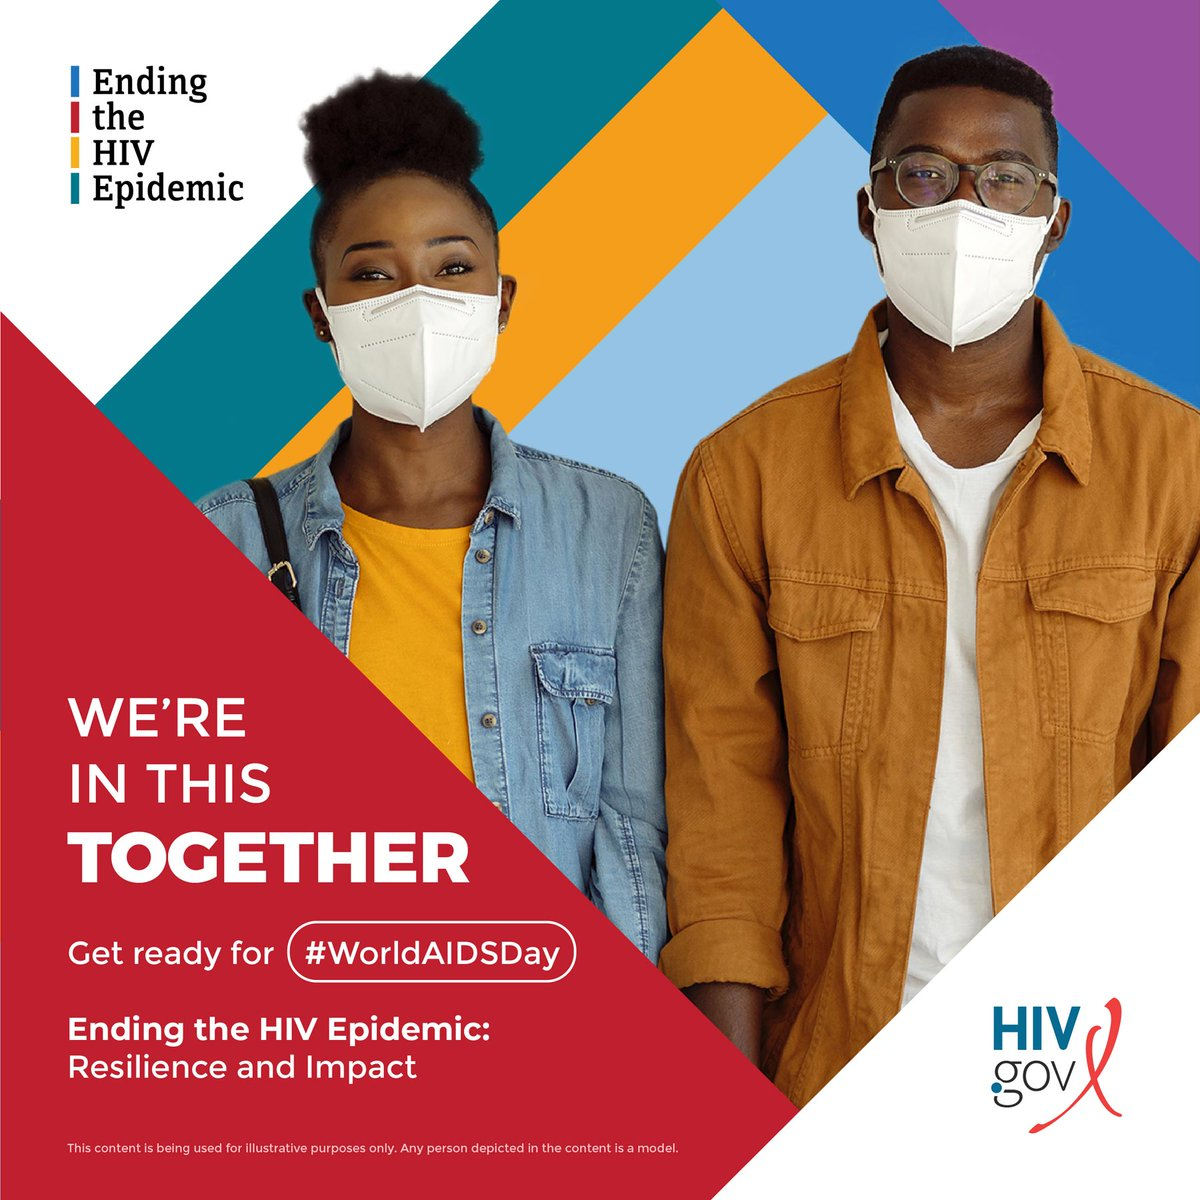 December 1 is #WorldAIDSDay , a day to come together to #EndHIVEpidemic across the globe. We all have a role to play, so let's #StopHIVTogether.  Get a free sexual health screening TODAY at 512 E. Highland Blvd. until 4:30 p.m.  Call us at 210-207-8839.   #WAD2020  #IKnowMyStatus